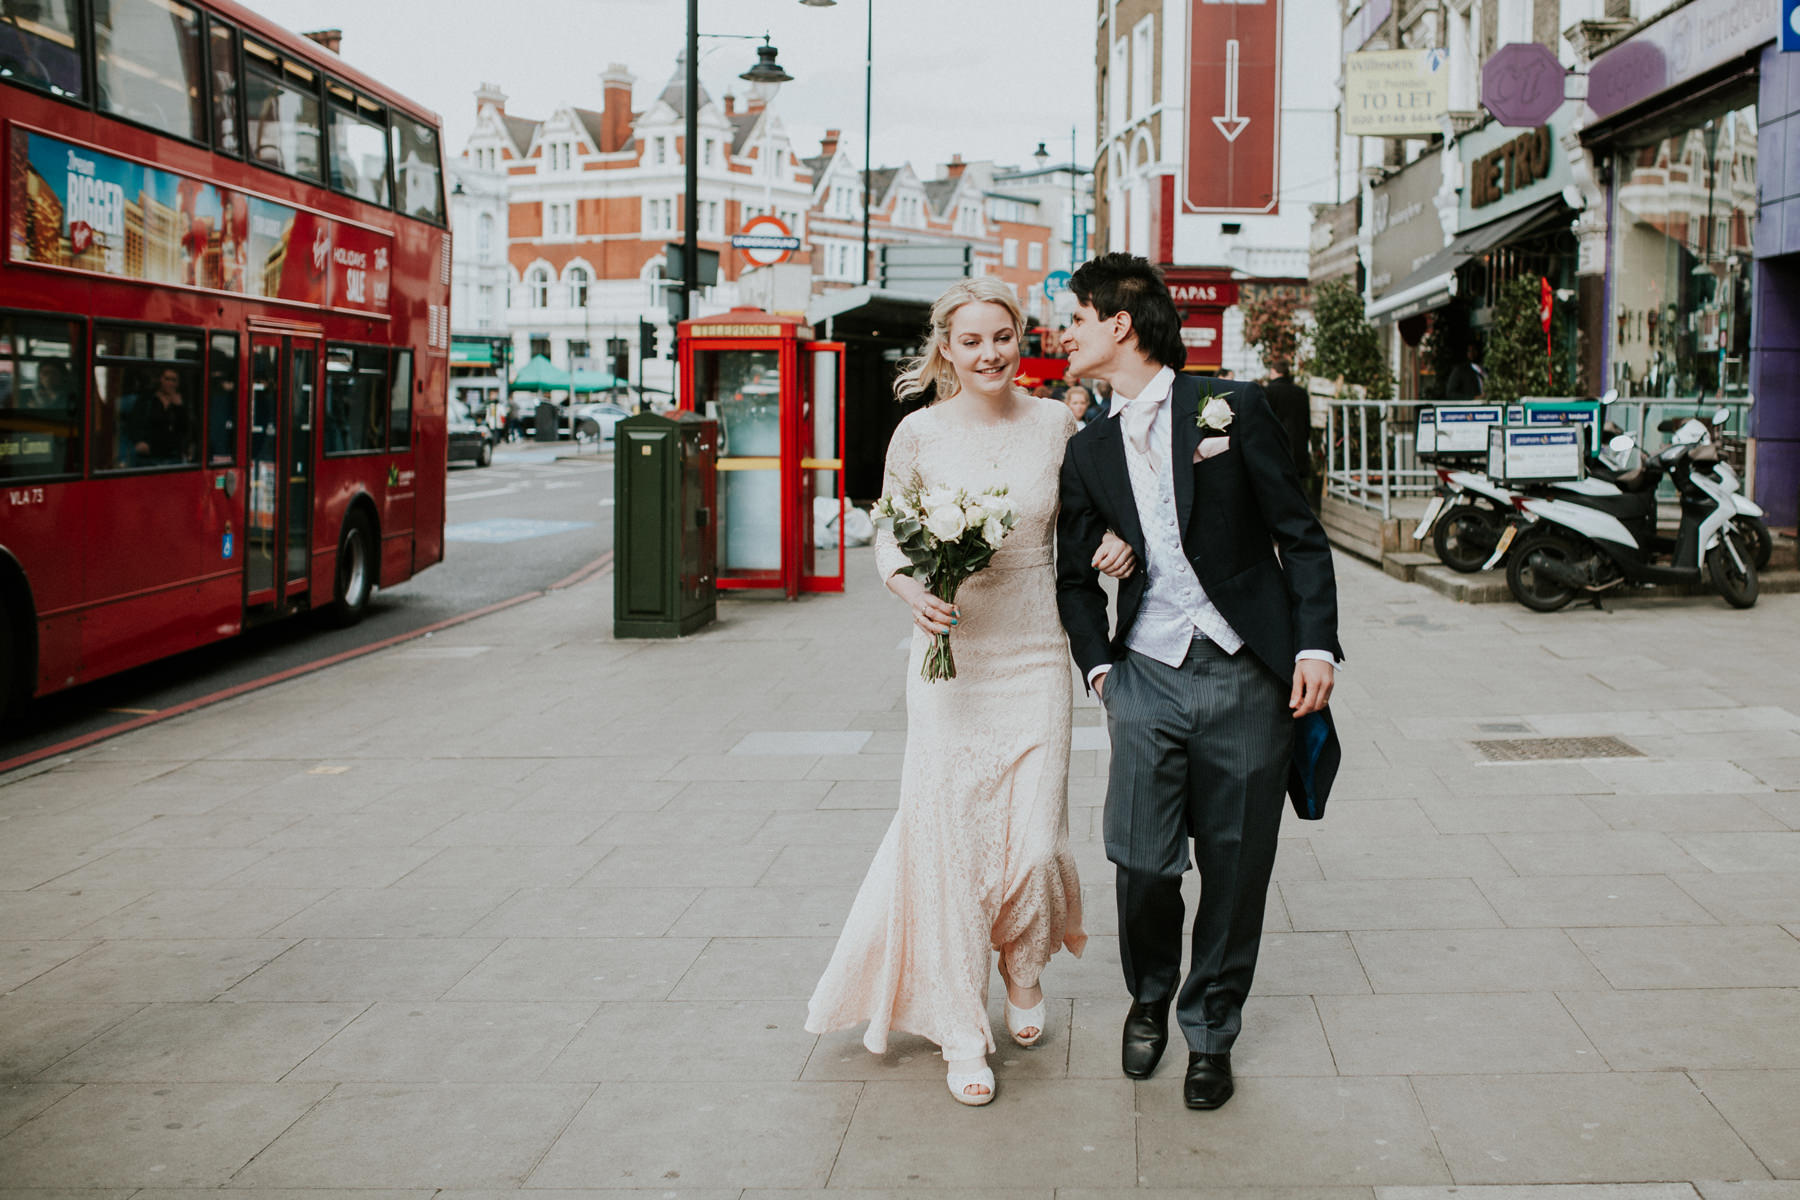 LD-380-newly-married-bride-groom-walking-London-street-photos.jpg